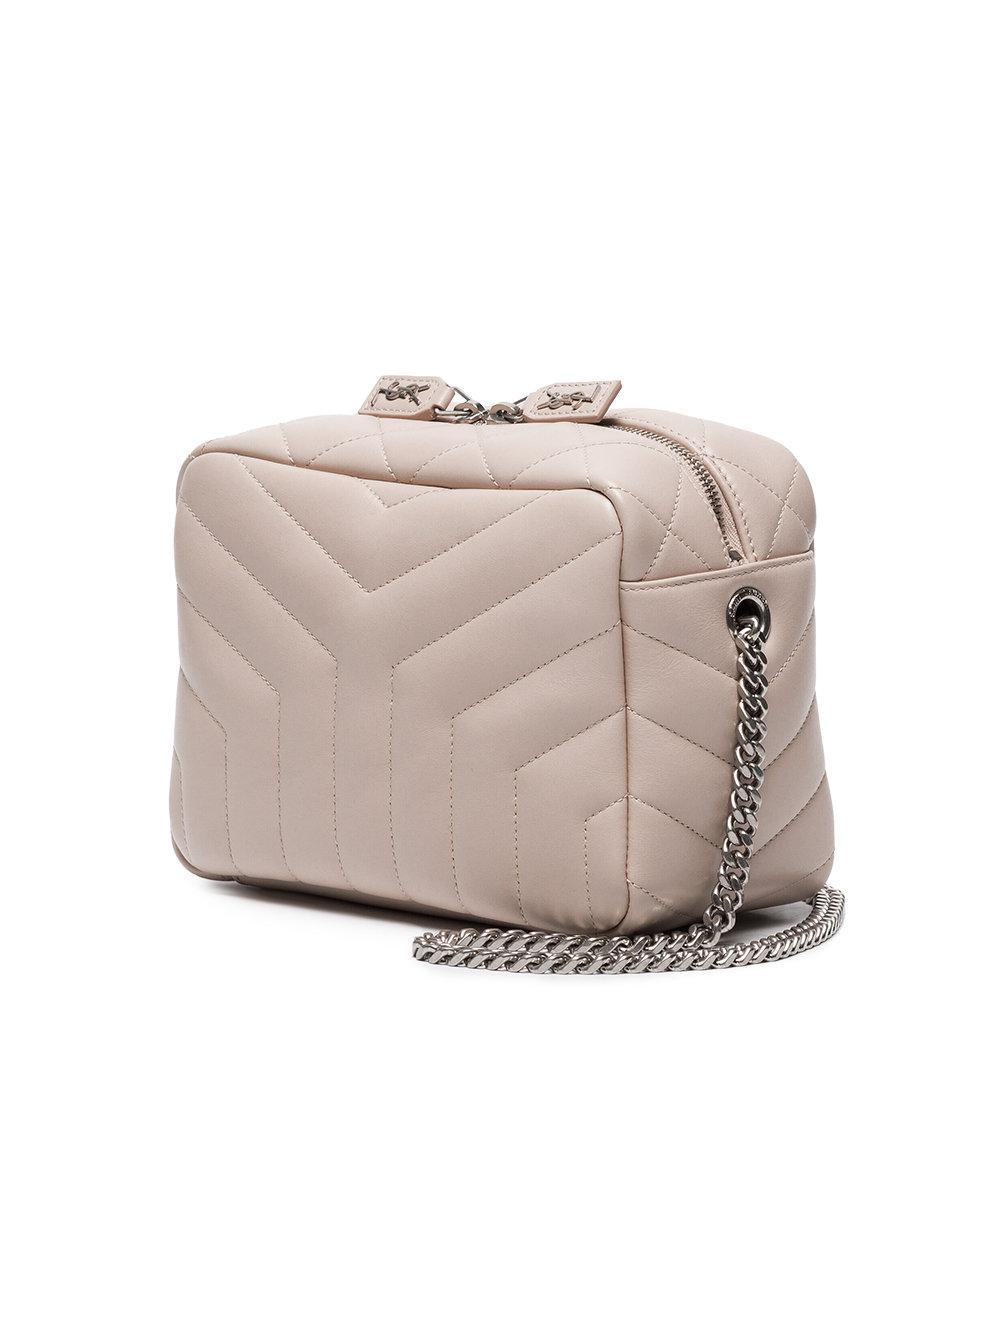 Saint Laurent Light Pink Monogram Lou Lou Quilted Leather